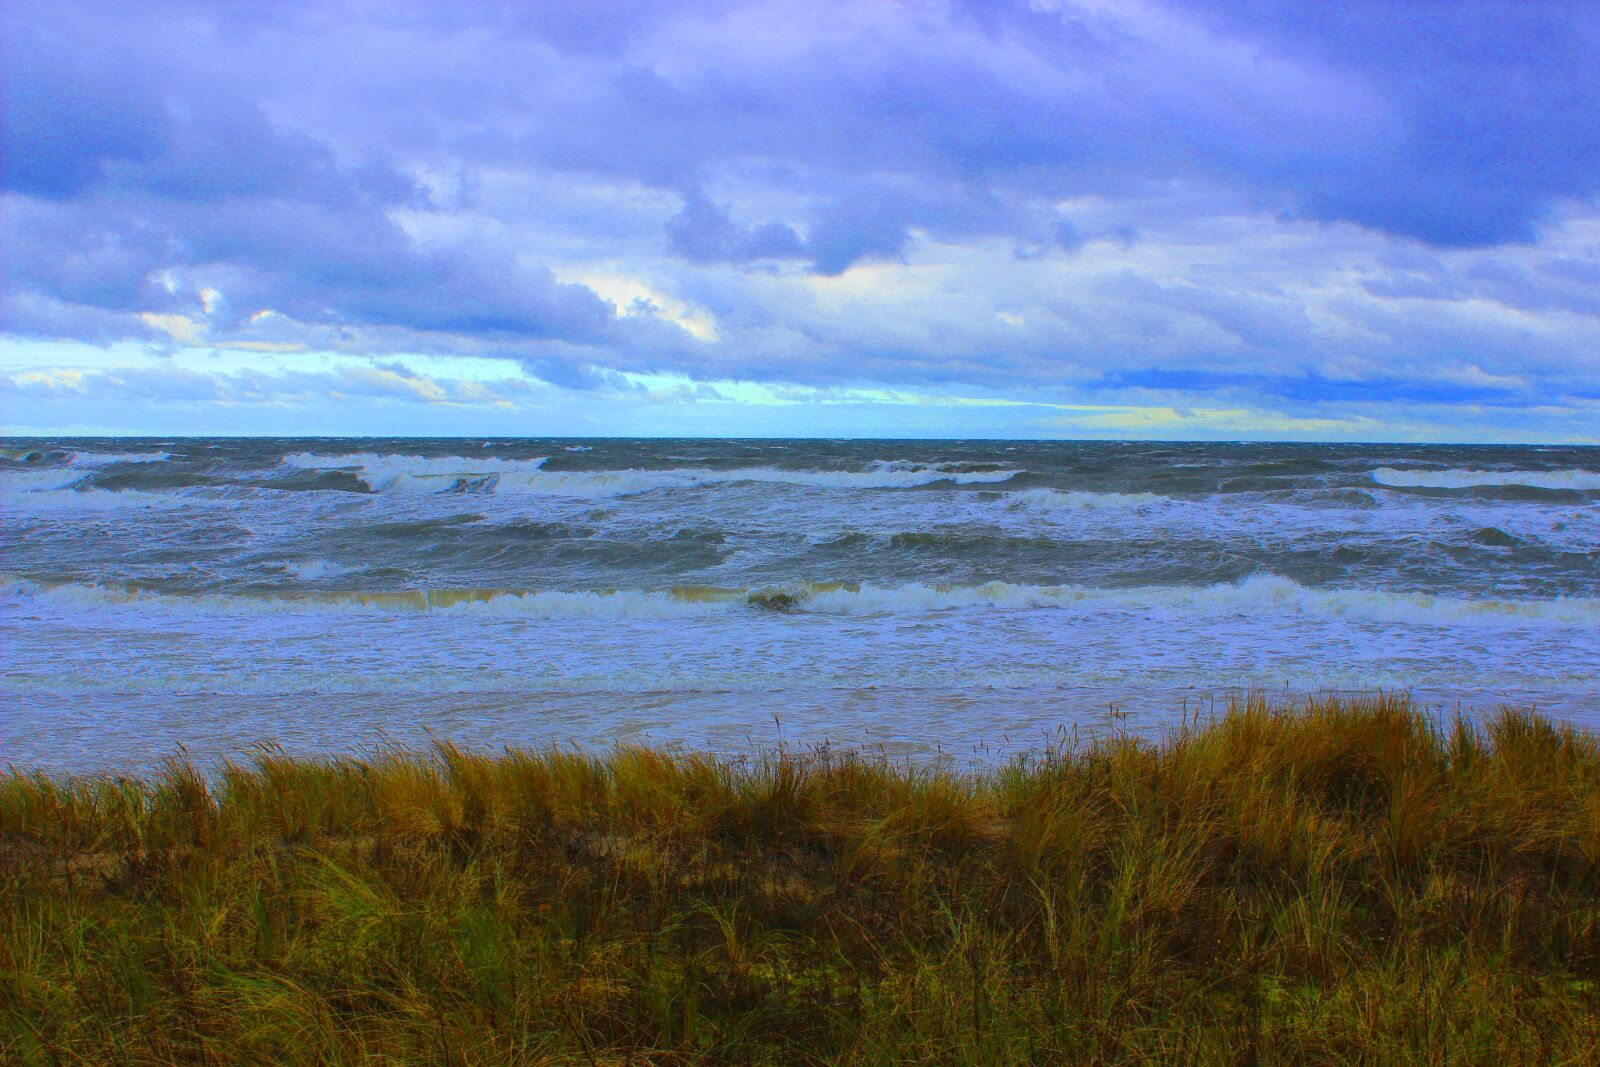 """Canon EOS 600D (Rebel EOS T3i / EOS Kiss X5) sample photo. """"Clouds, sea, wave"""" photography"""